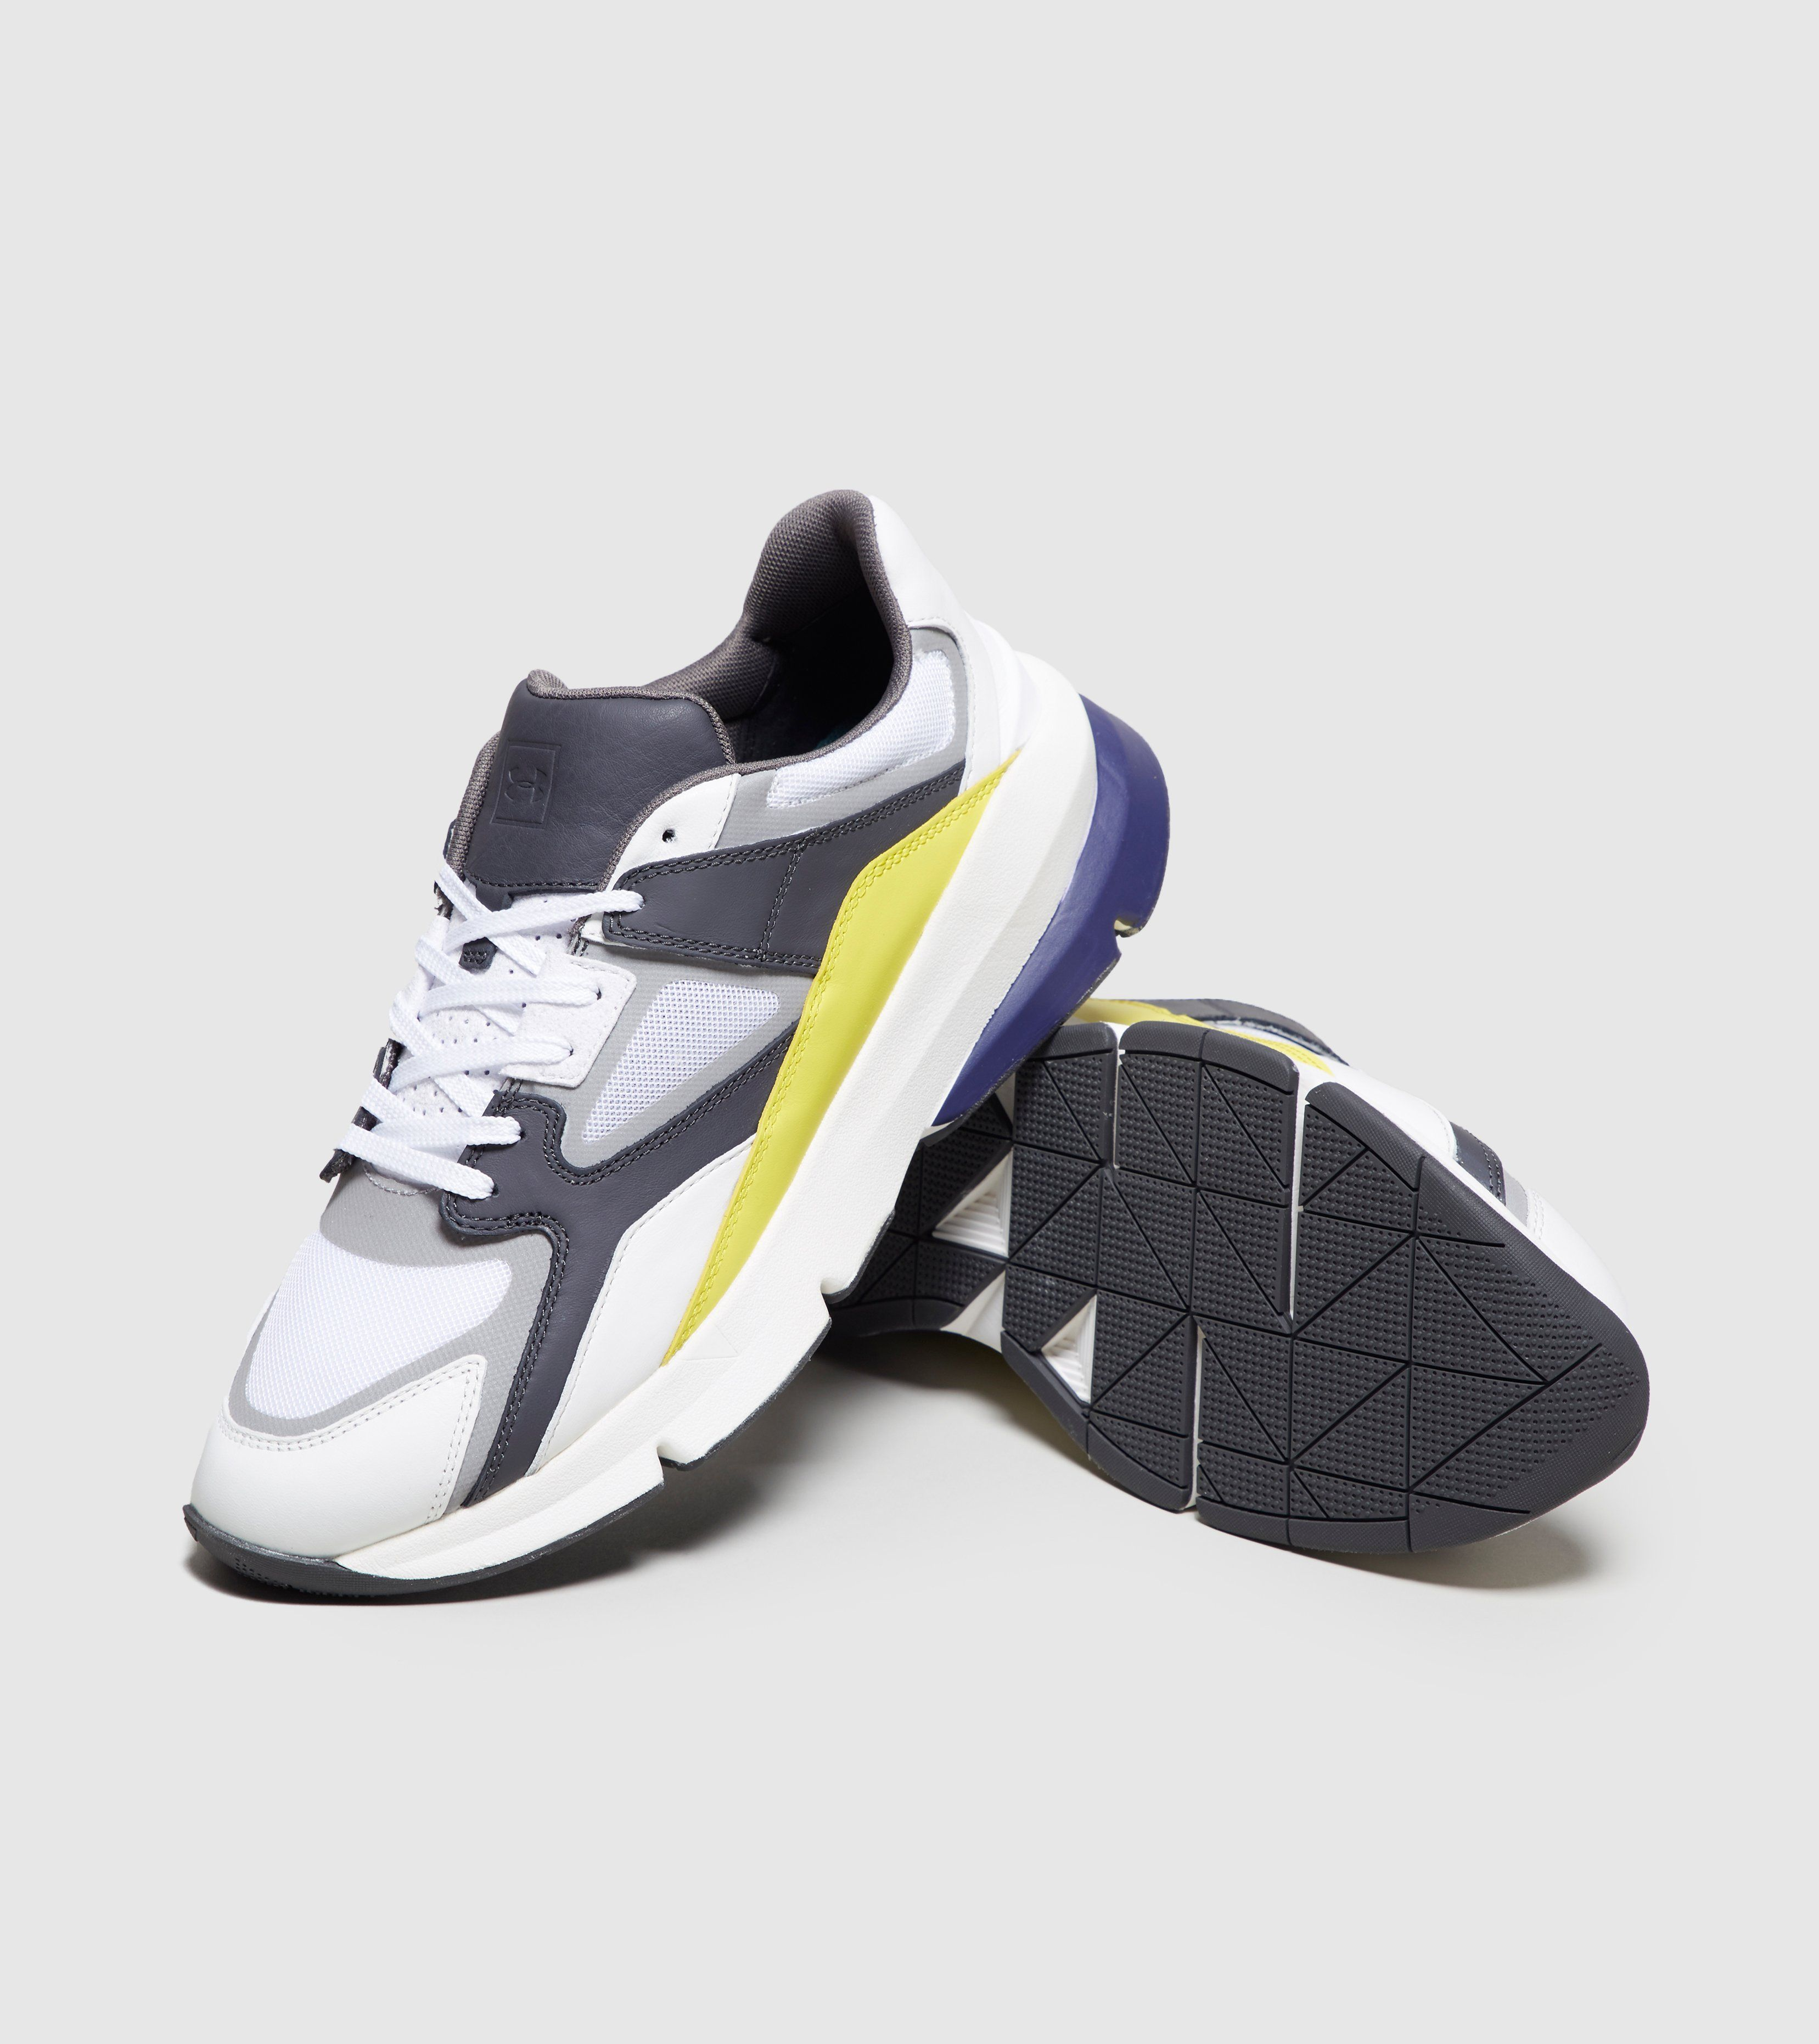 Under Armour Forge 96 Track